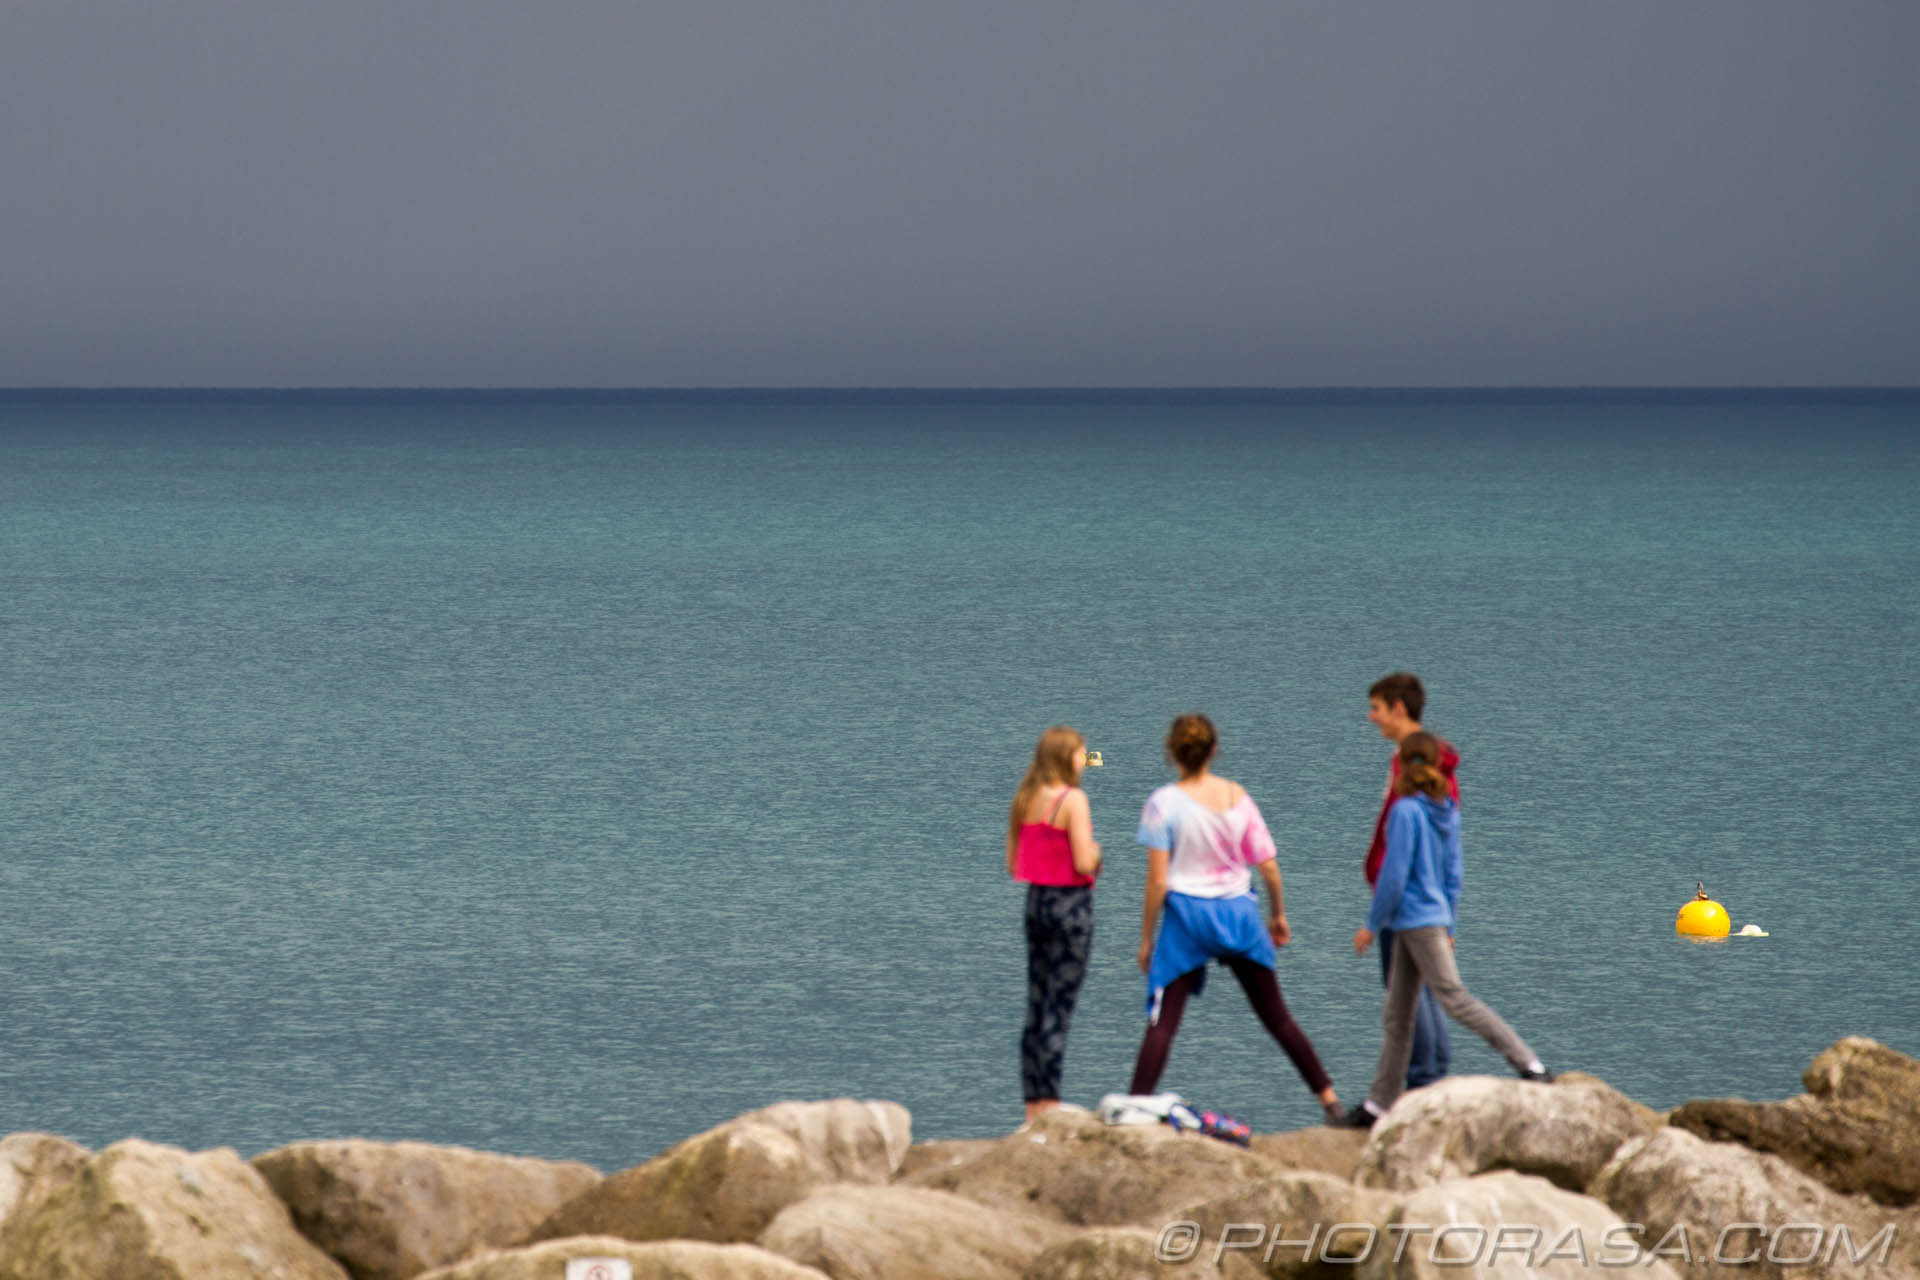 http://photorasa.com/sea-lyme-regis/teenagers-on-the-rocks-by-the-seaside/